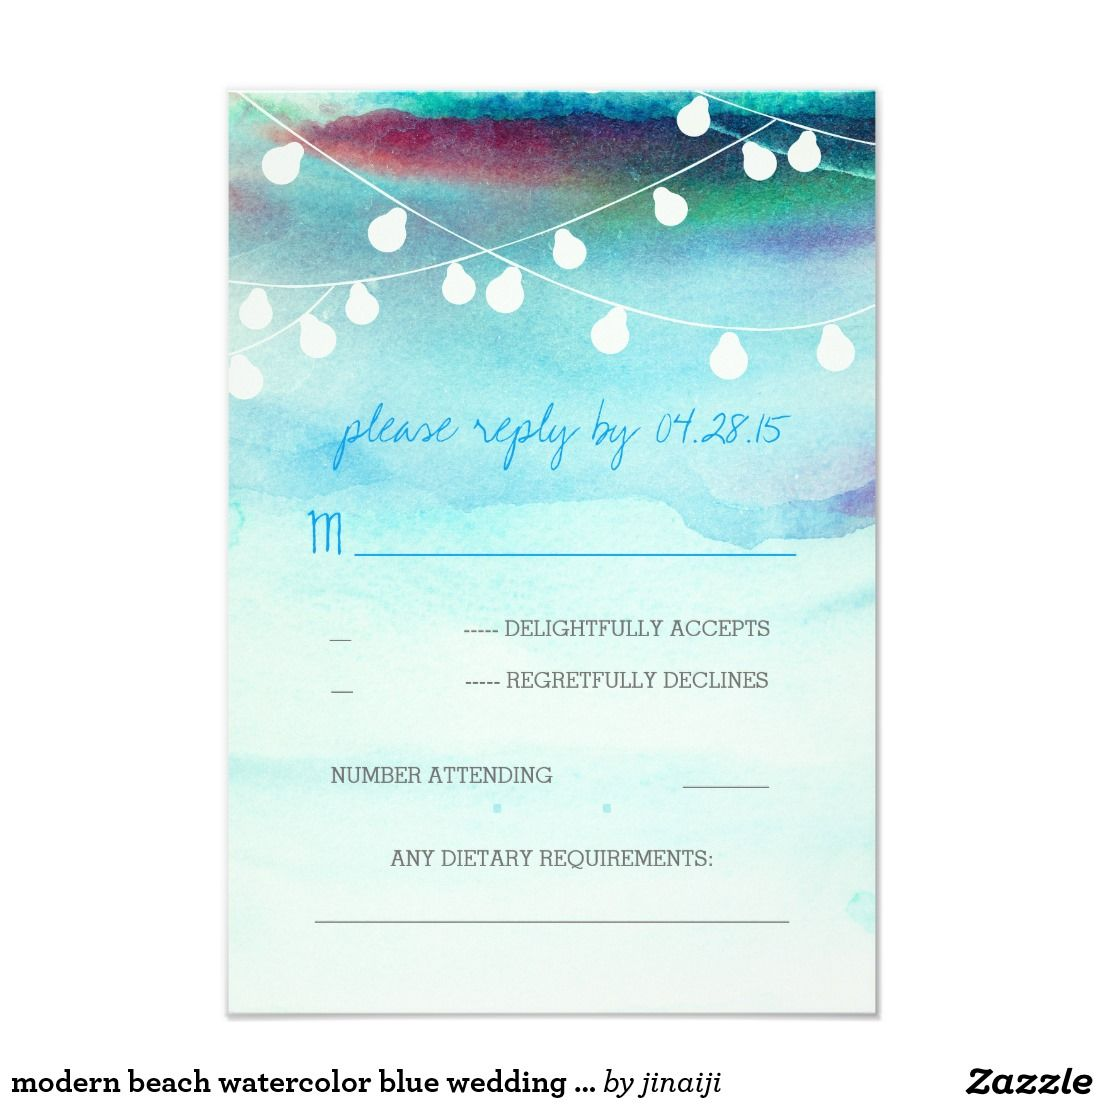 modern beach watercolor blue wedding RSVP cards | Watercolor ...